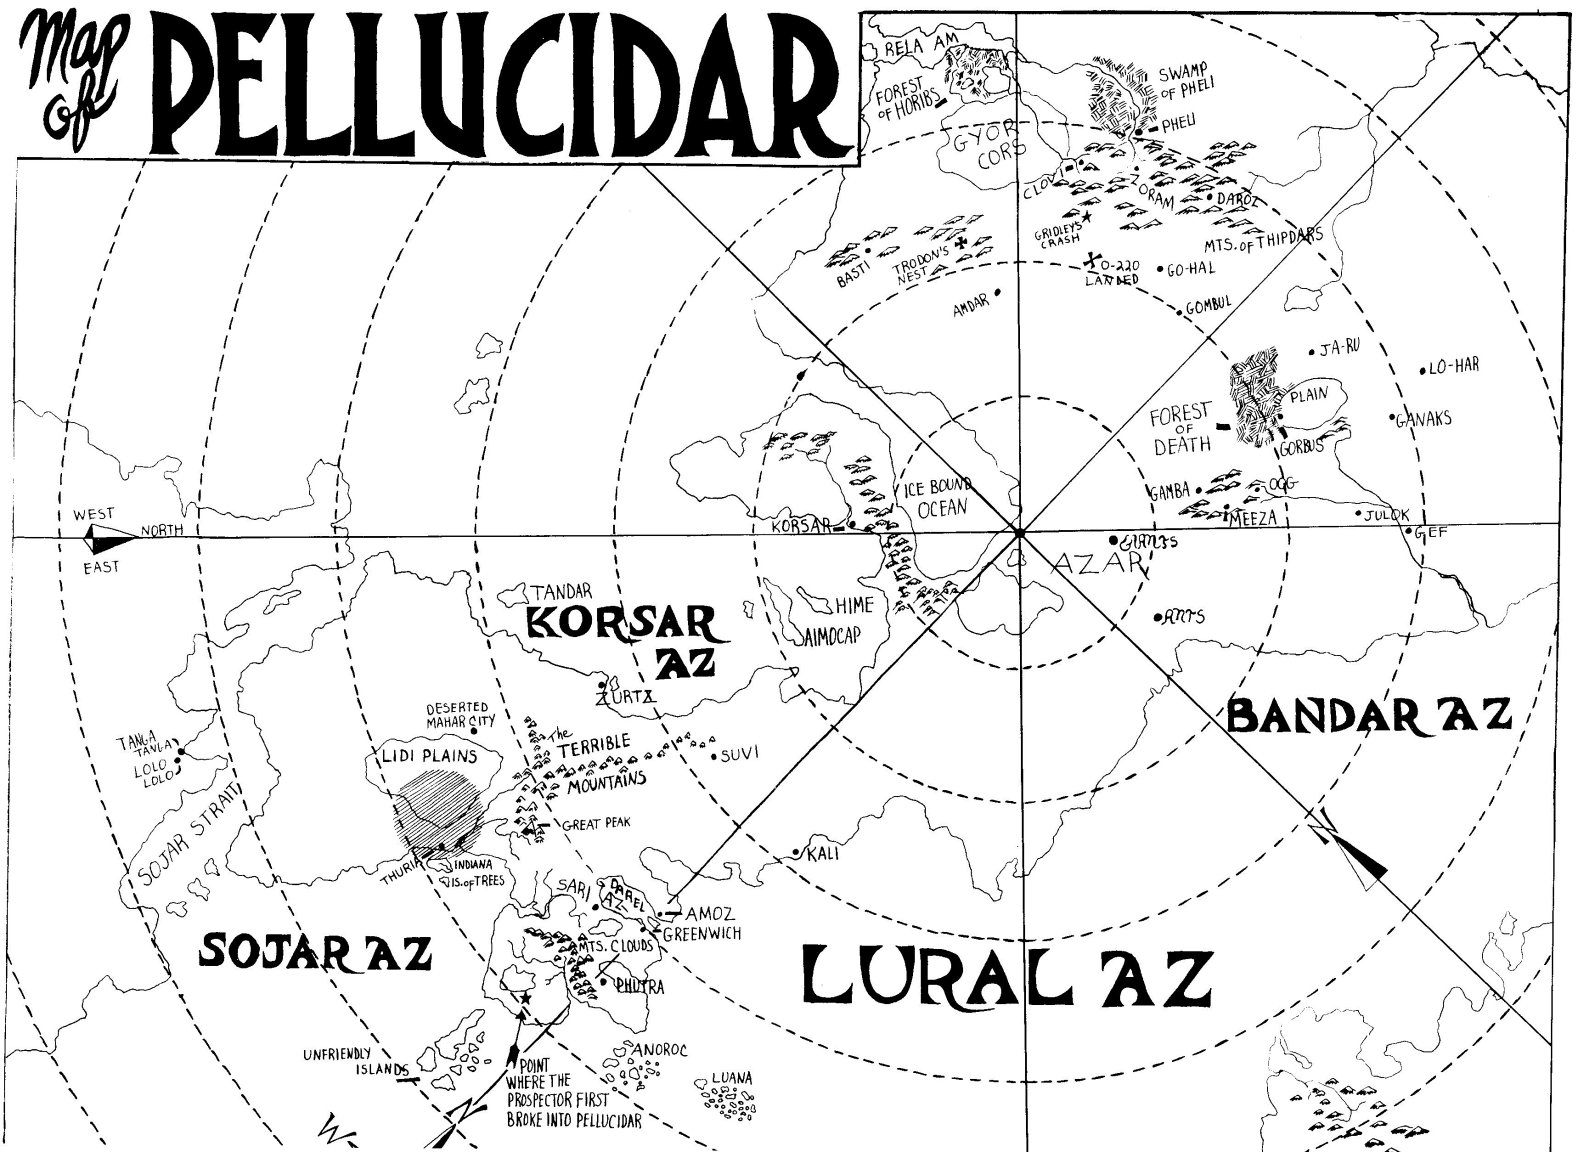 ERBzine 3042: Pellucidar Maps from ERB Atlas